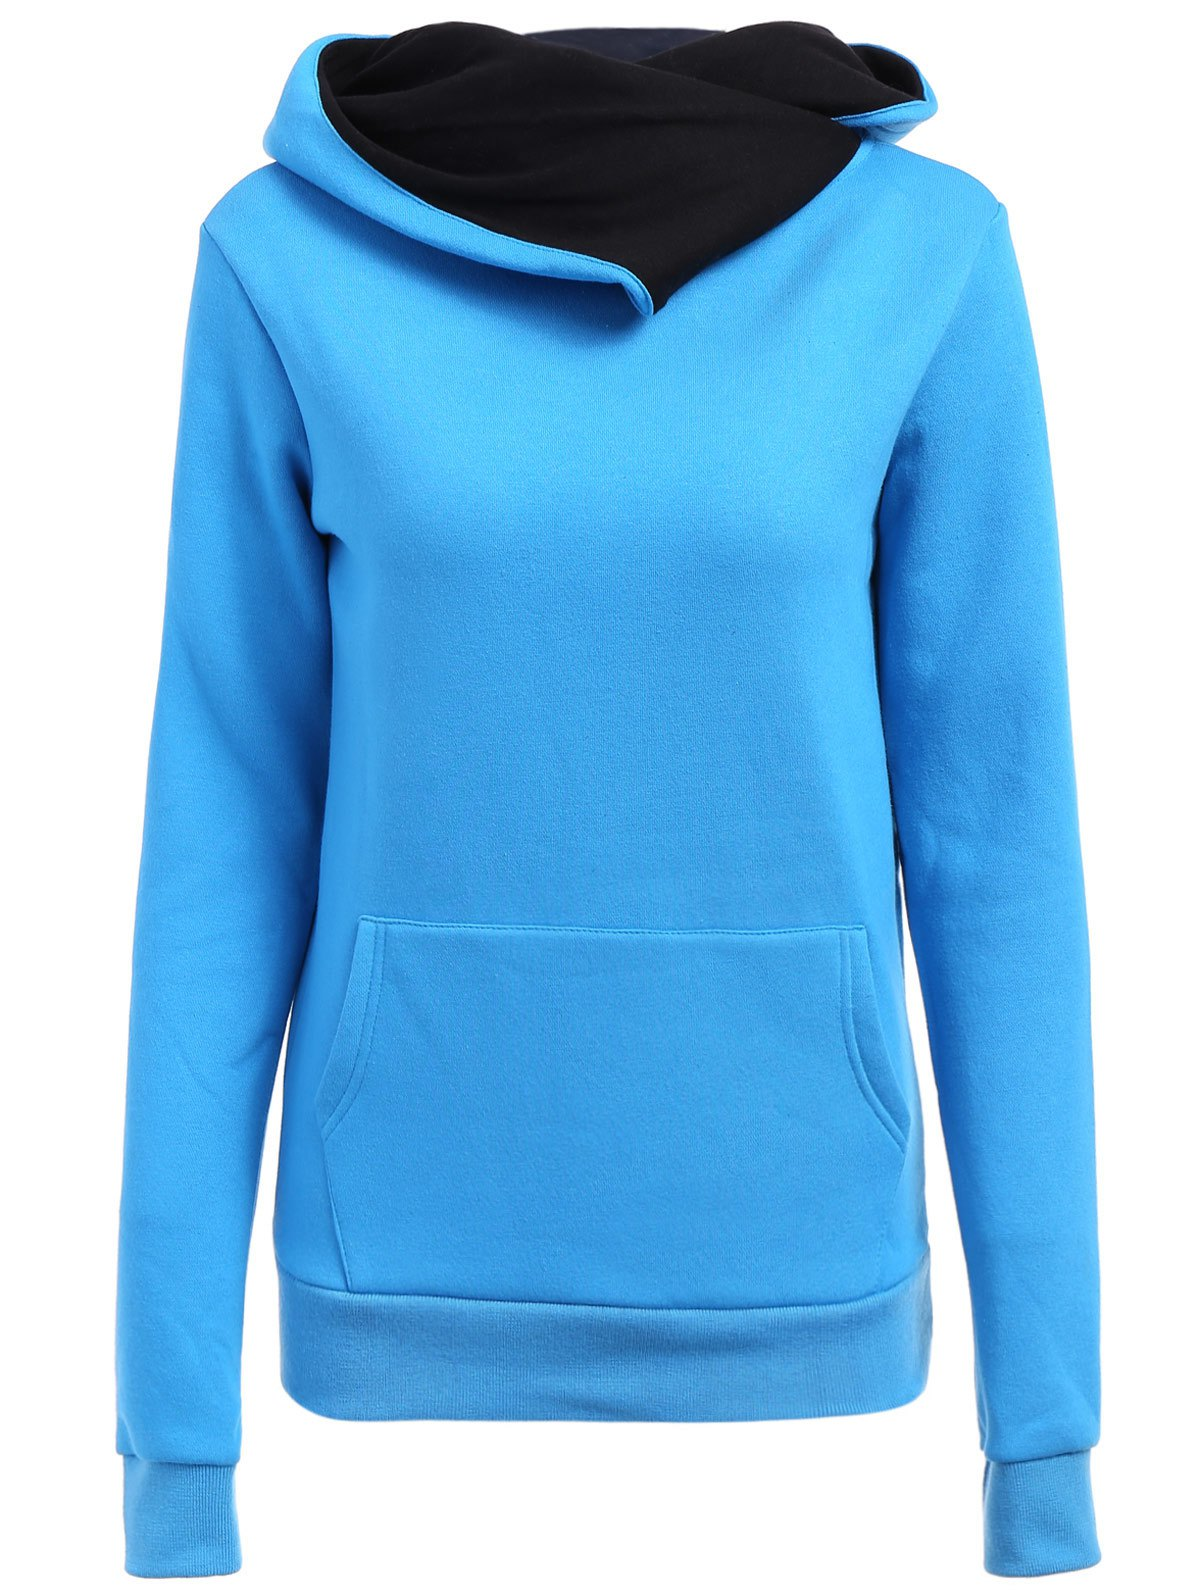 Casual Style Loose-Fitting Solid Color Long Sleeve Hoodie For Women fashionable solid color long sleeve loose fitting hoodie for women